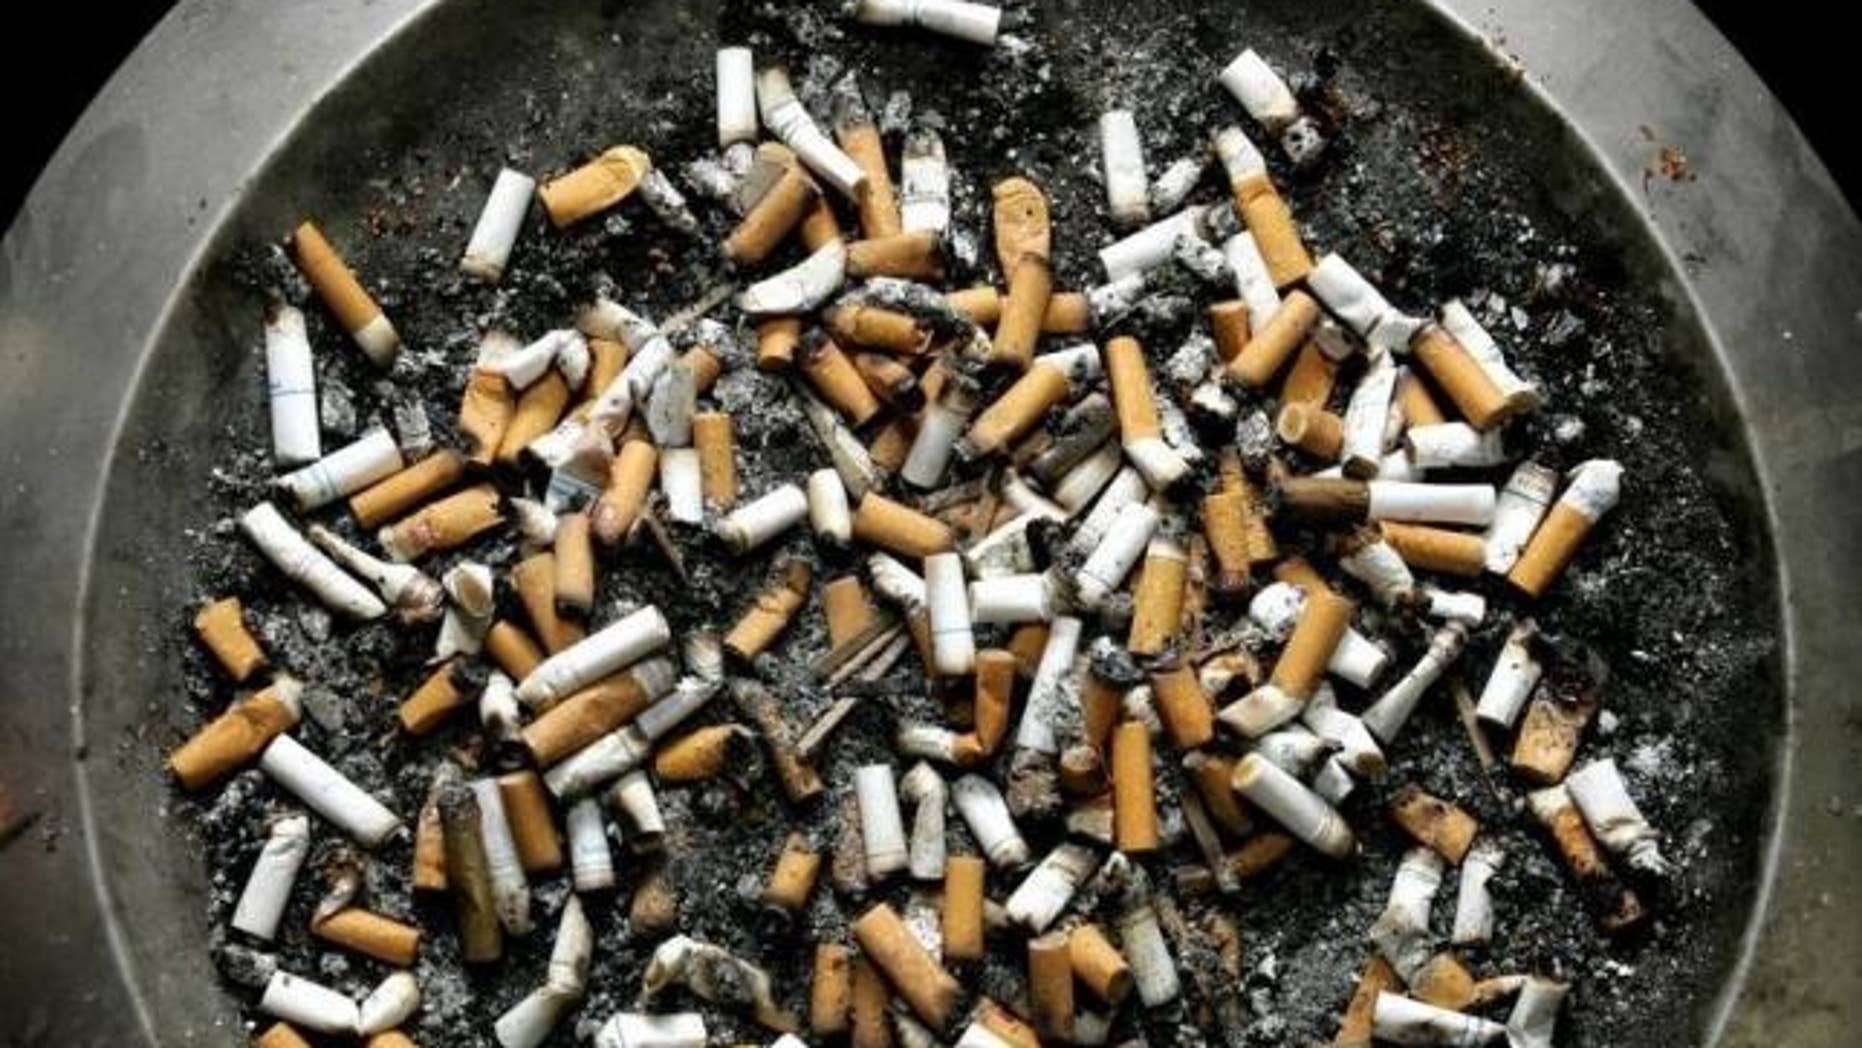 Feb. 21, 2005: Cigarette butts lie in an ashtray outside a Montreal office building.